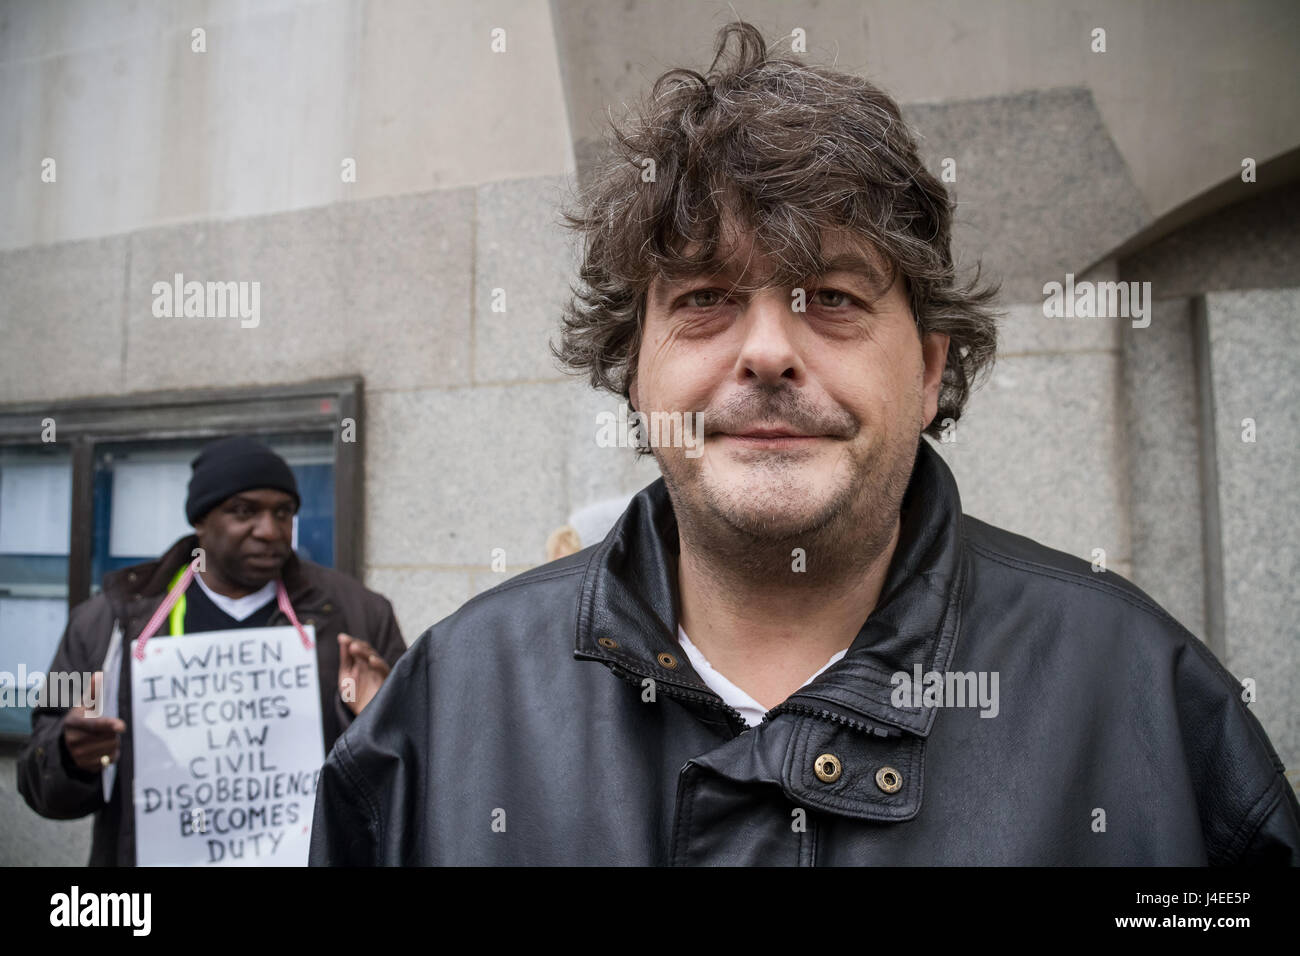 David Shayler former MI5 security service officer outside Old Bailey court in London, UK. - Stock Image